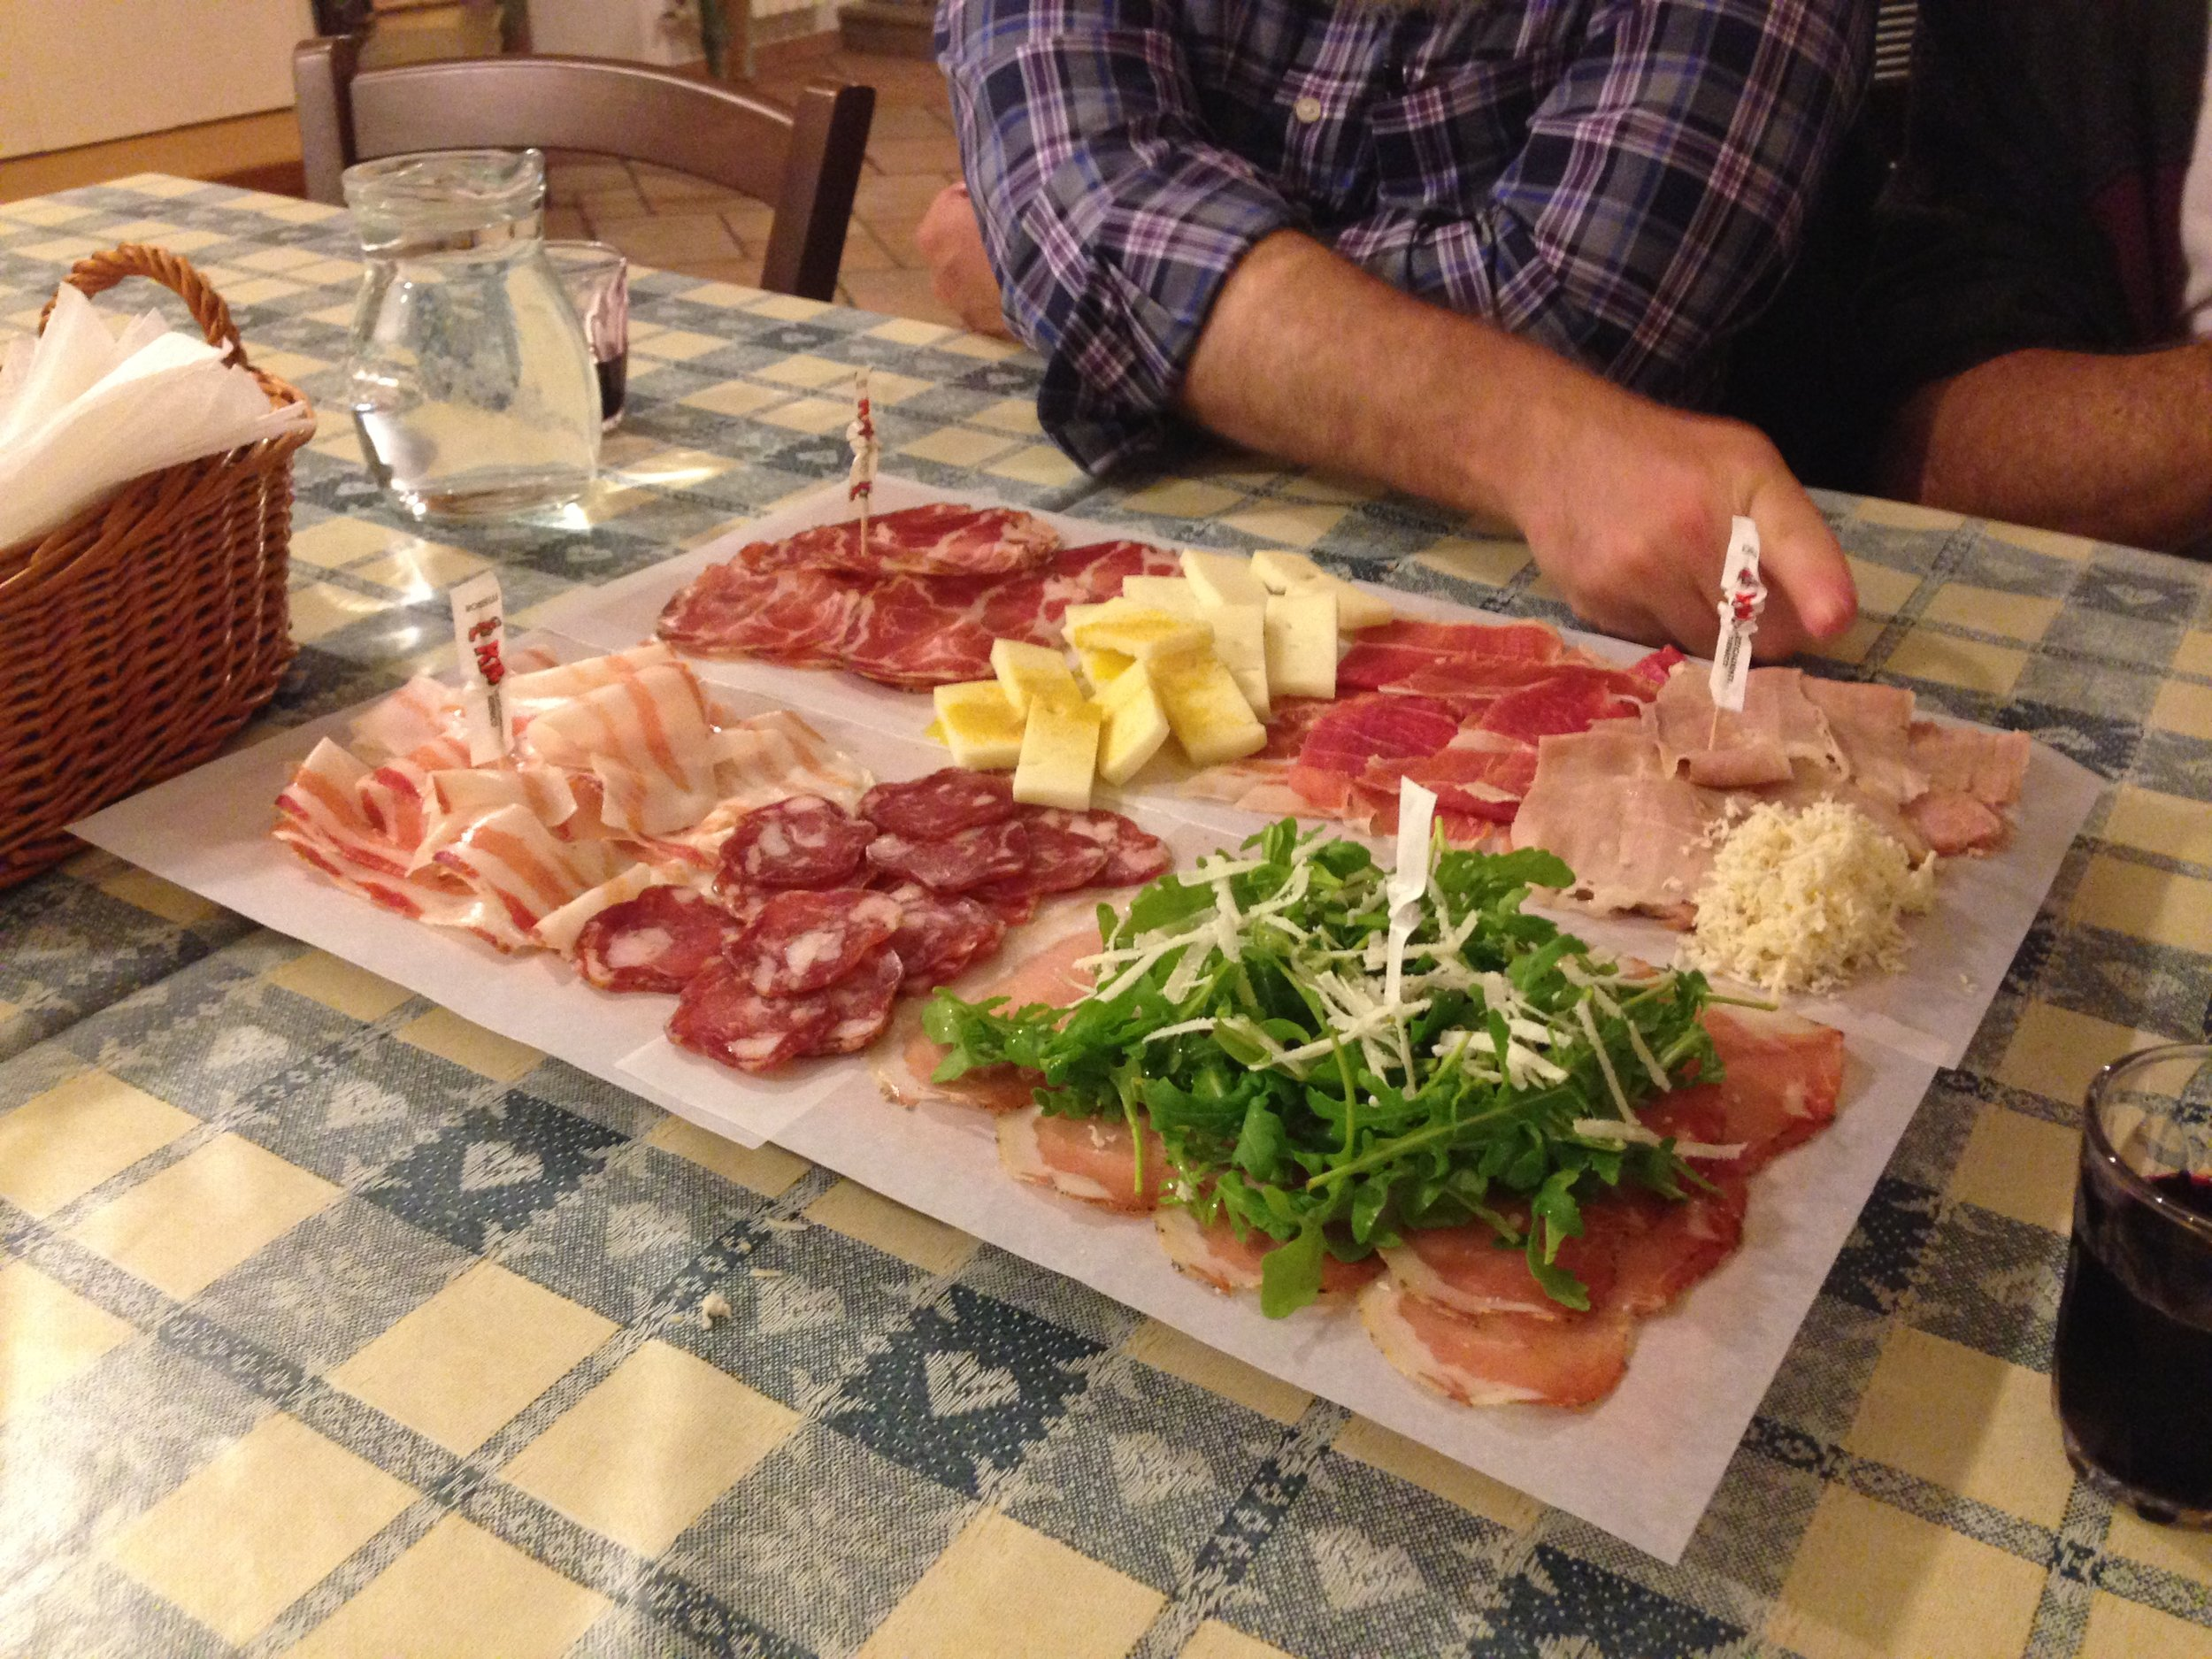 A typical dinner at an osmiza, with salami, prosciutto crudo and cotto, cheese, rucola, horseradish, bread, and wine all produced at the farm